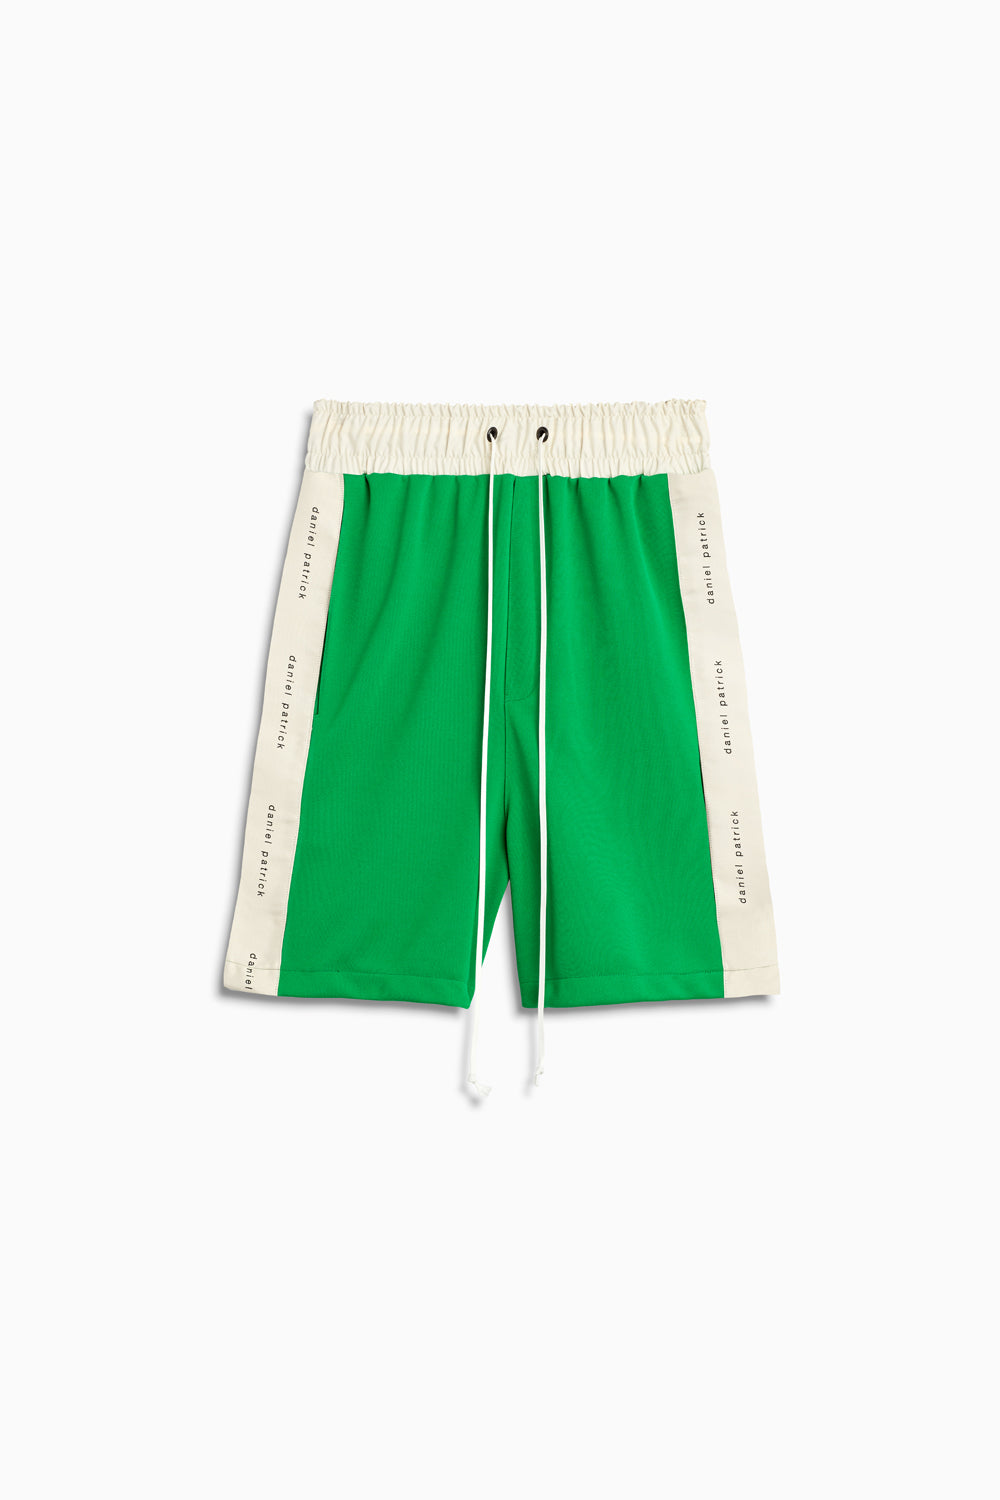 roaming gym shorts in green/ivory by daniel patrick